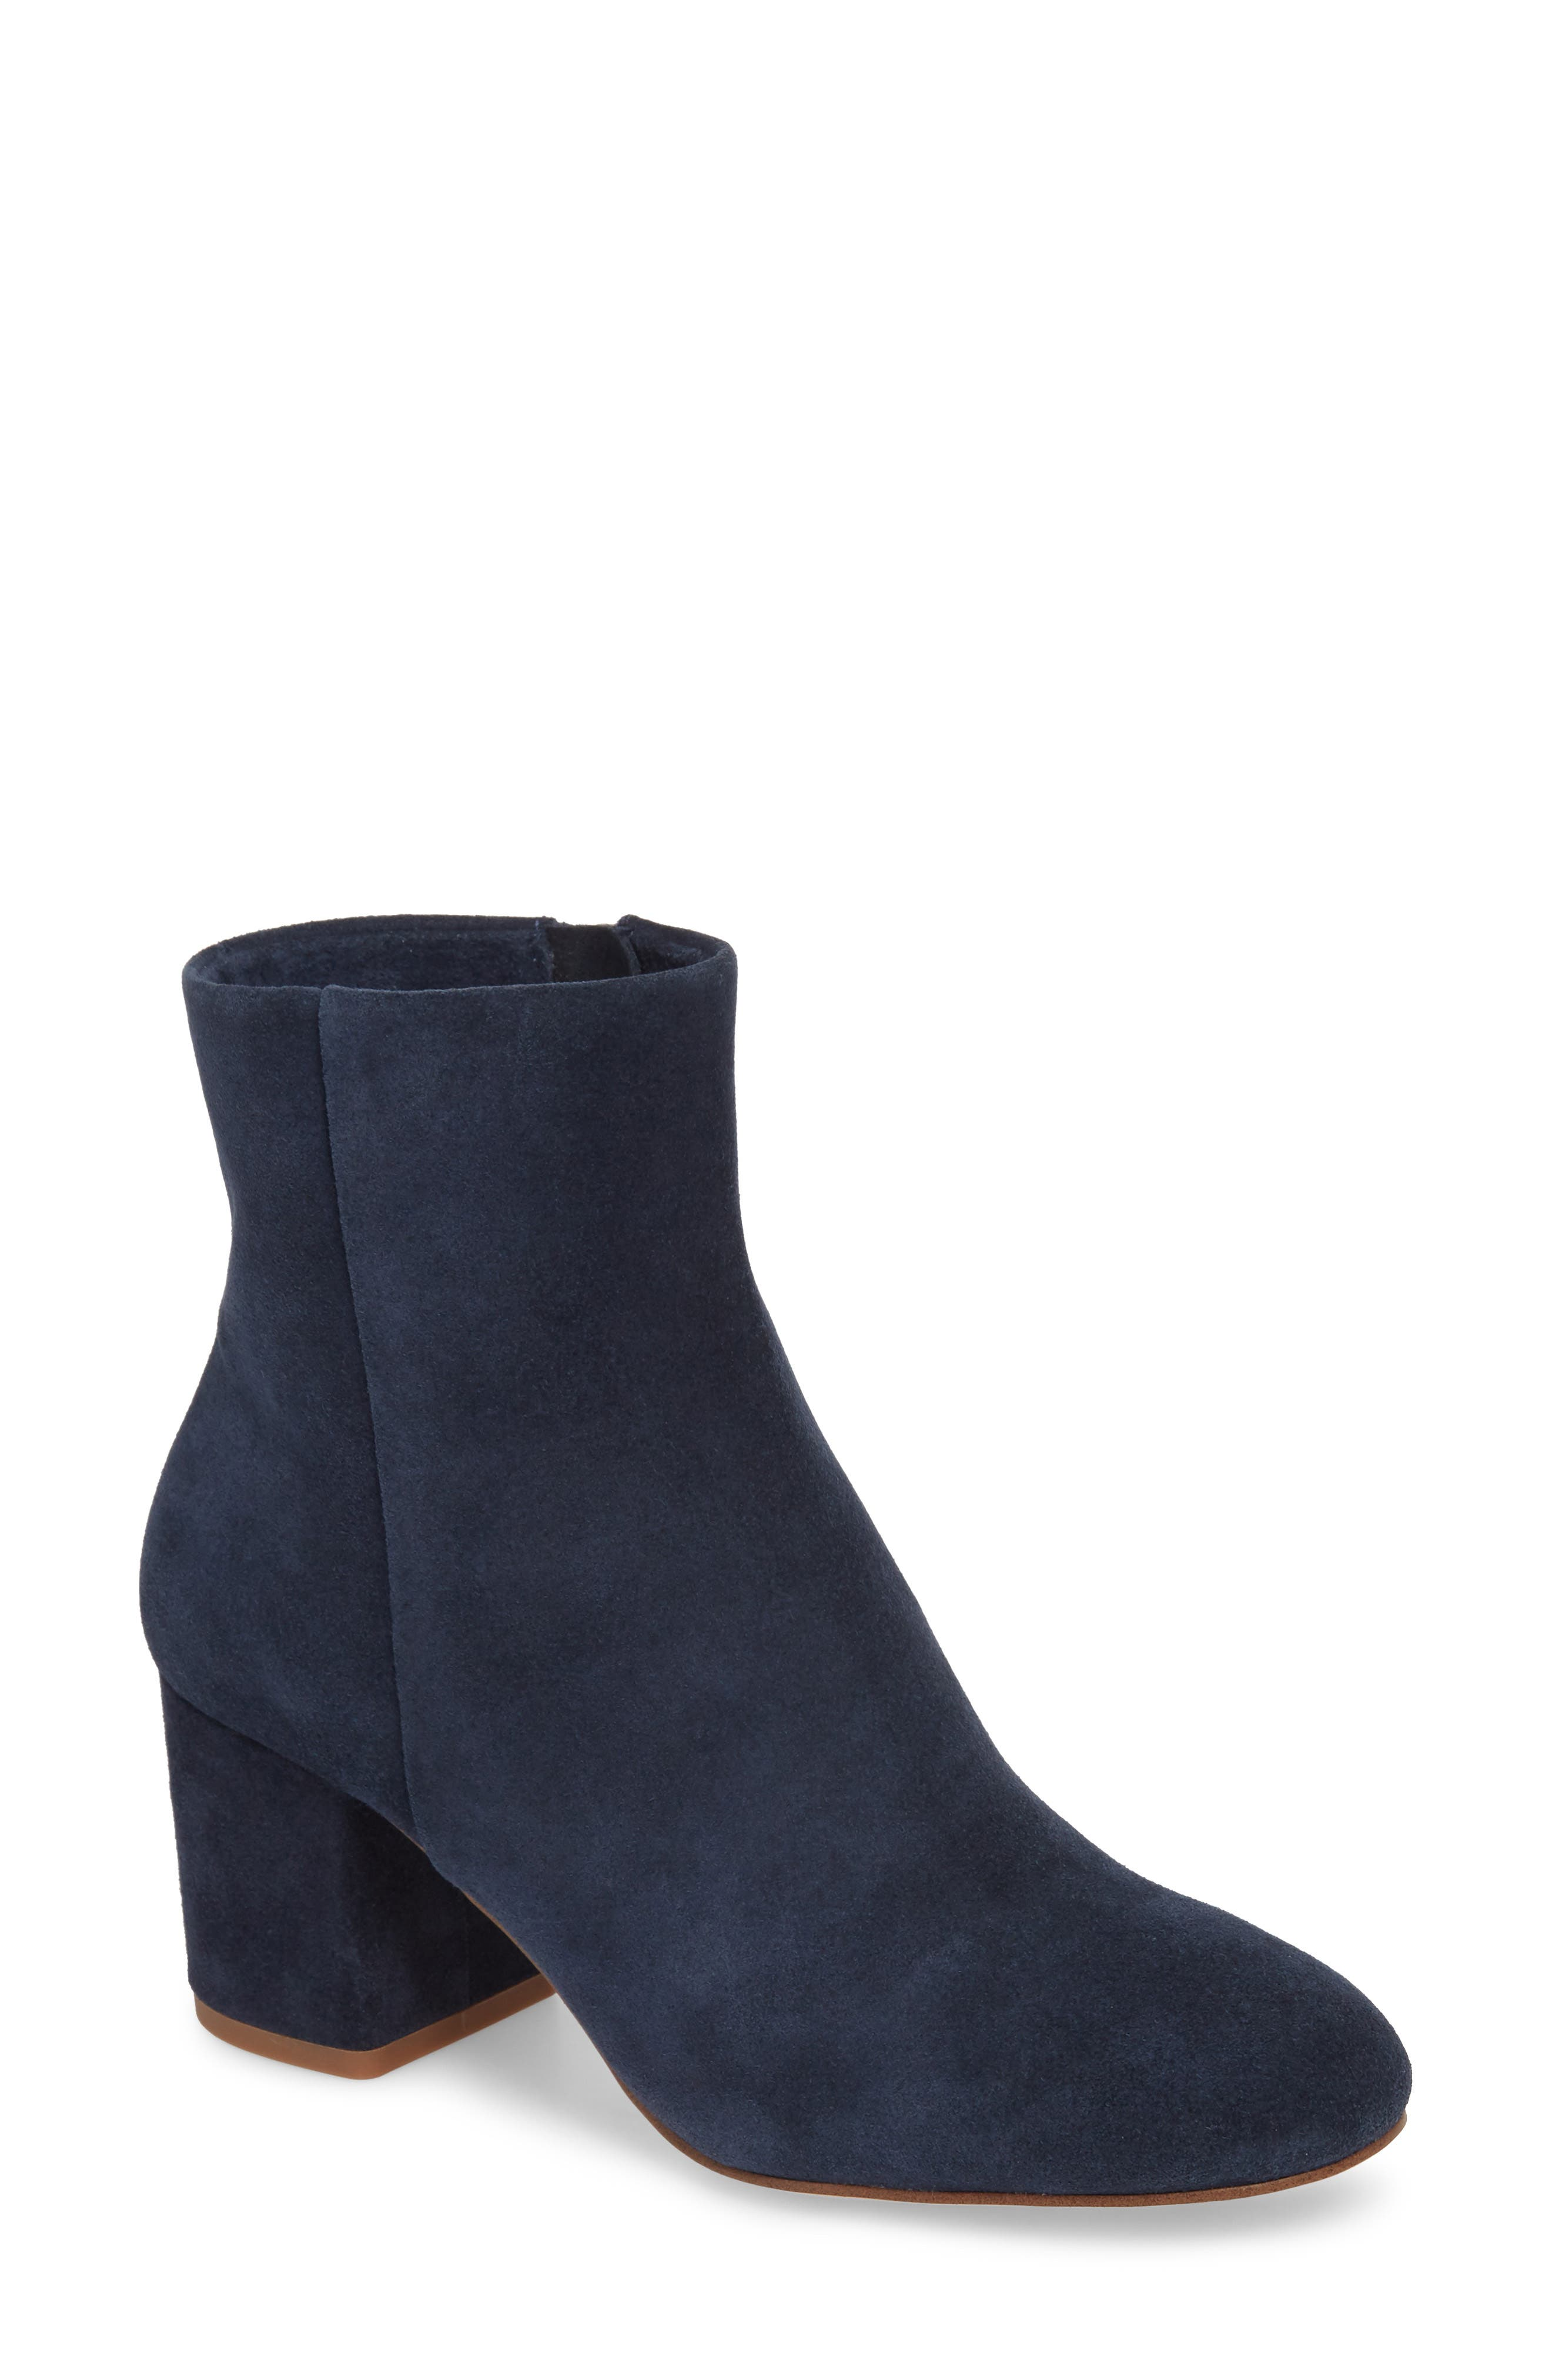 Nixie Bootie,                             Main thumbnail 1, color,                             Navy Suede